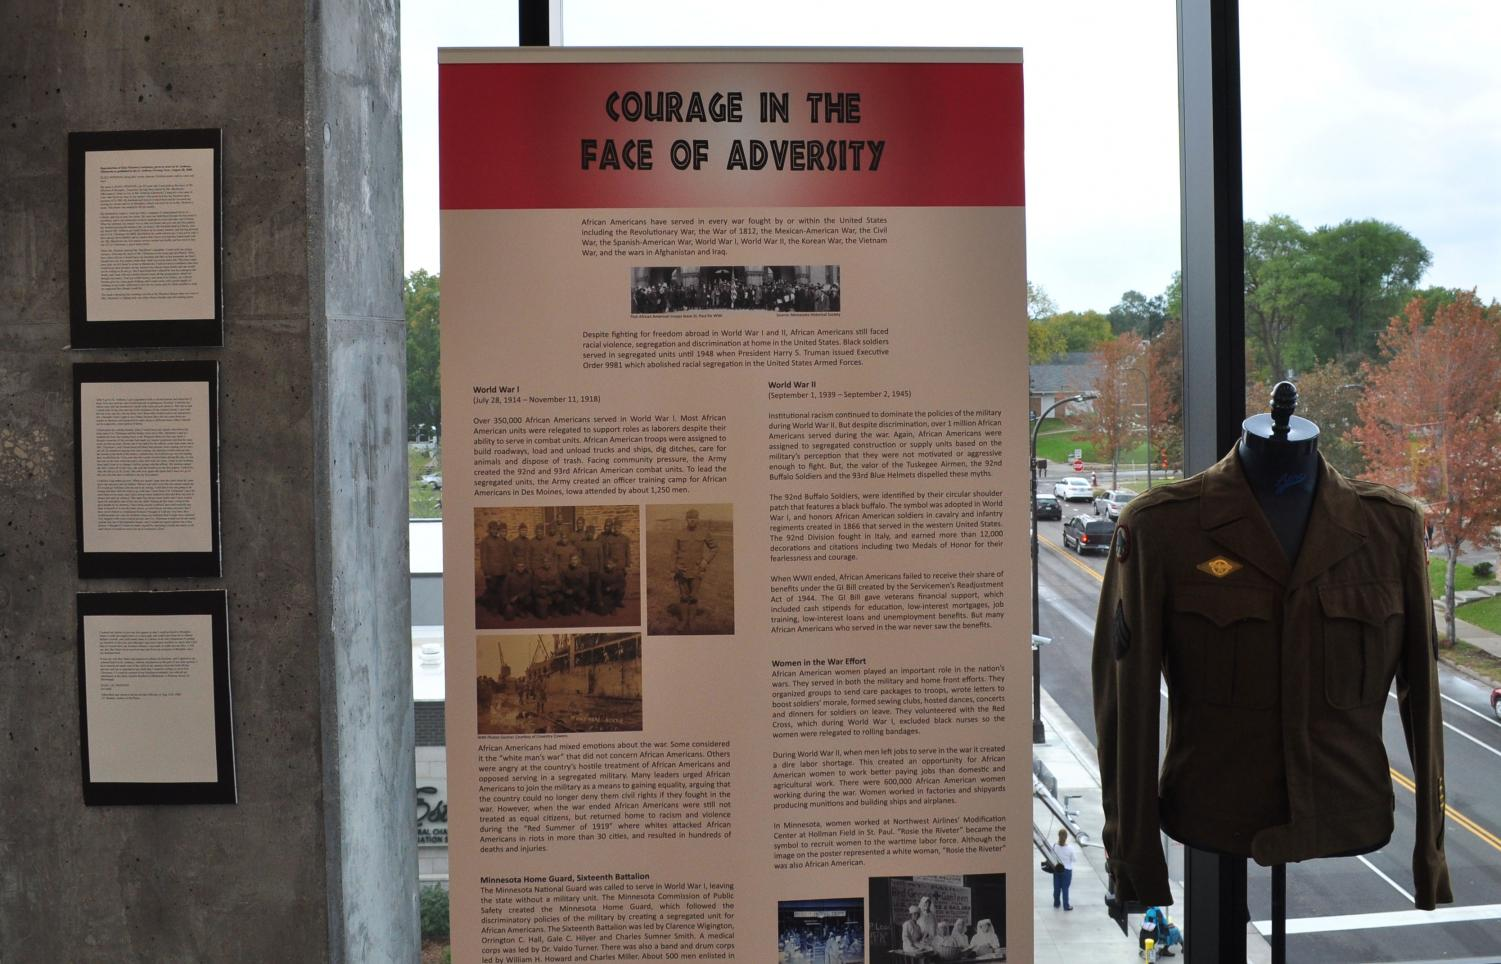 The African American Heritage Museum celebrates the resilience of African Americans in Minnesota. On display is an authentic uniform from WWII belonging to Jack Sidney Rainey Sr. The museum is free of admission and is open from 1- 5 p.m. Tuesday-Saturday, located at 1256 Penn Ave North in Minneapolis.